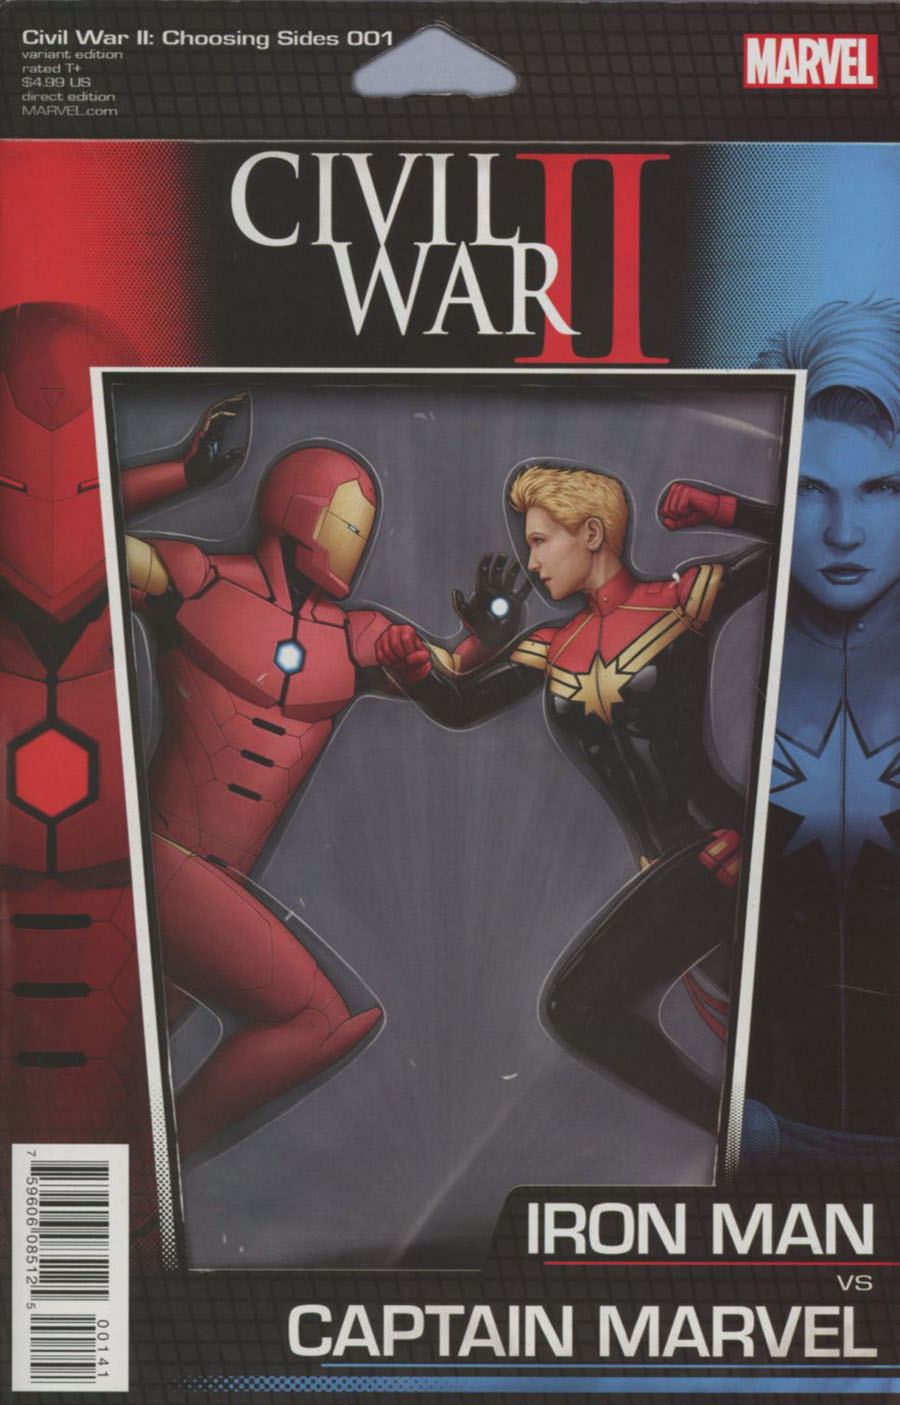 Civil War II Choosing Sides #1 Cover C Variant John Tyler Christopher Action Figure Cover